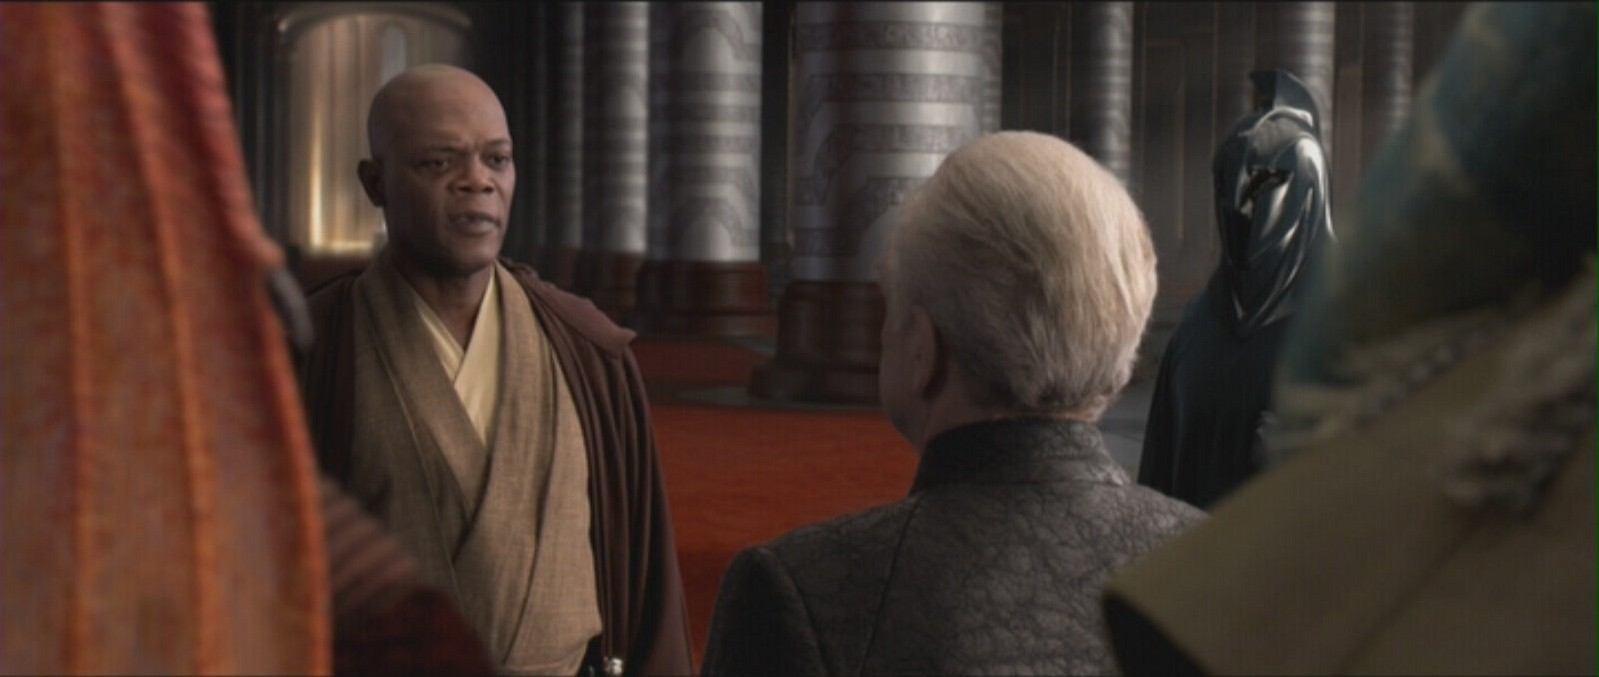 Free Download Mace Windu Images Star Wars Revenge Of The Sith Hd Wallpaper And 1599x677 For Your Desktop Mobile Tablet Explore 18 Mace Windu Wallpapers Mace Windu Wallpapers Mace Wallpaper